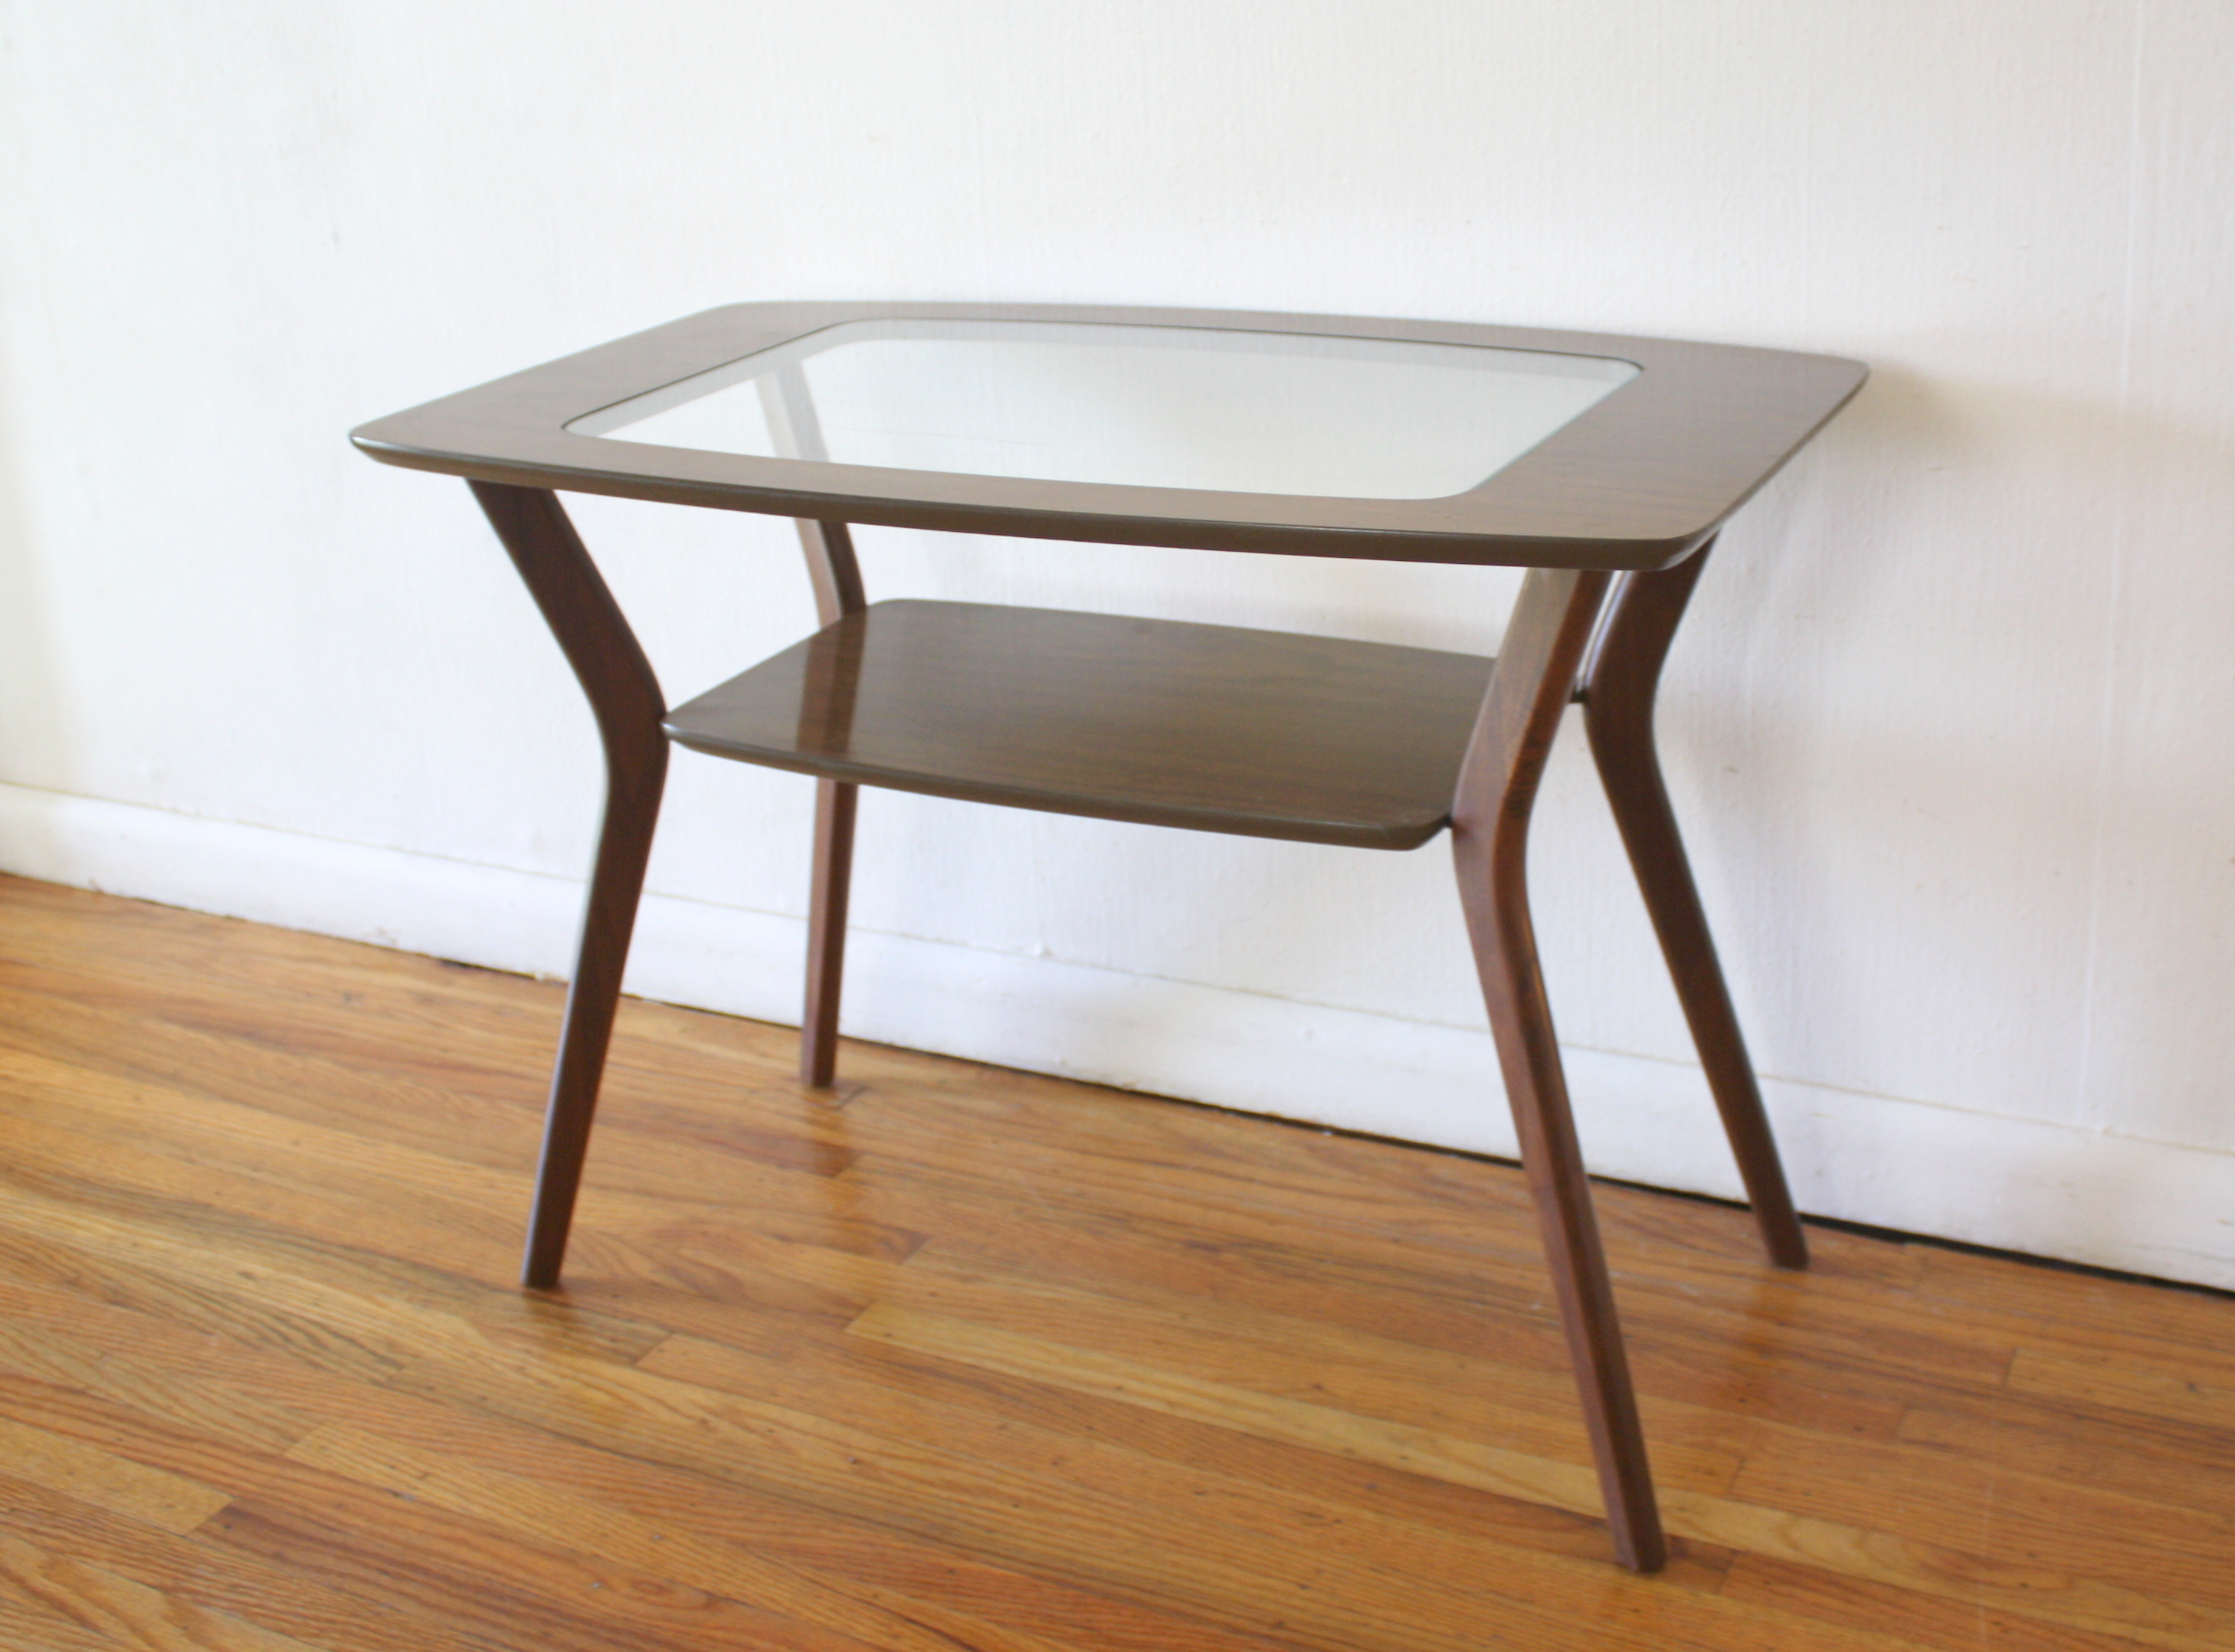 Image Result For Bassett Mid Century Modern Coffee Table